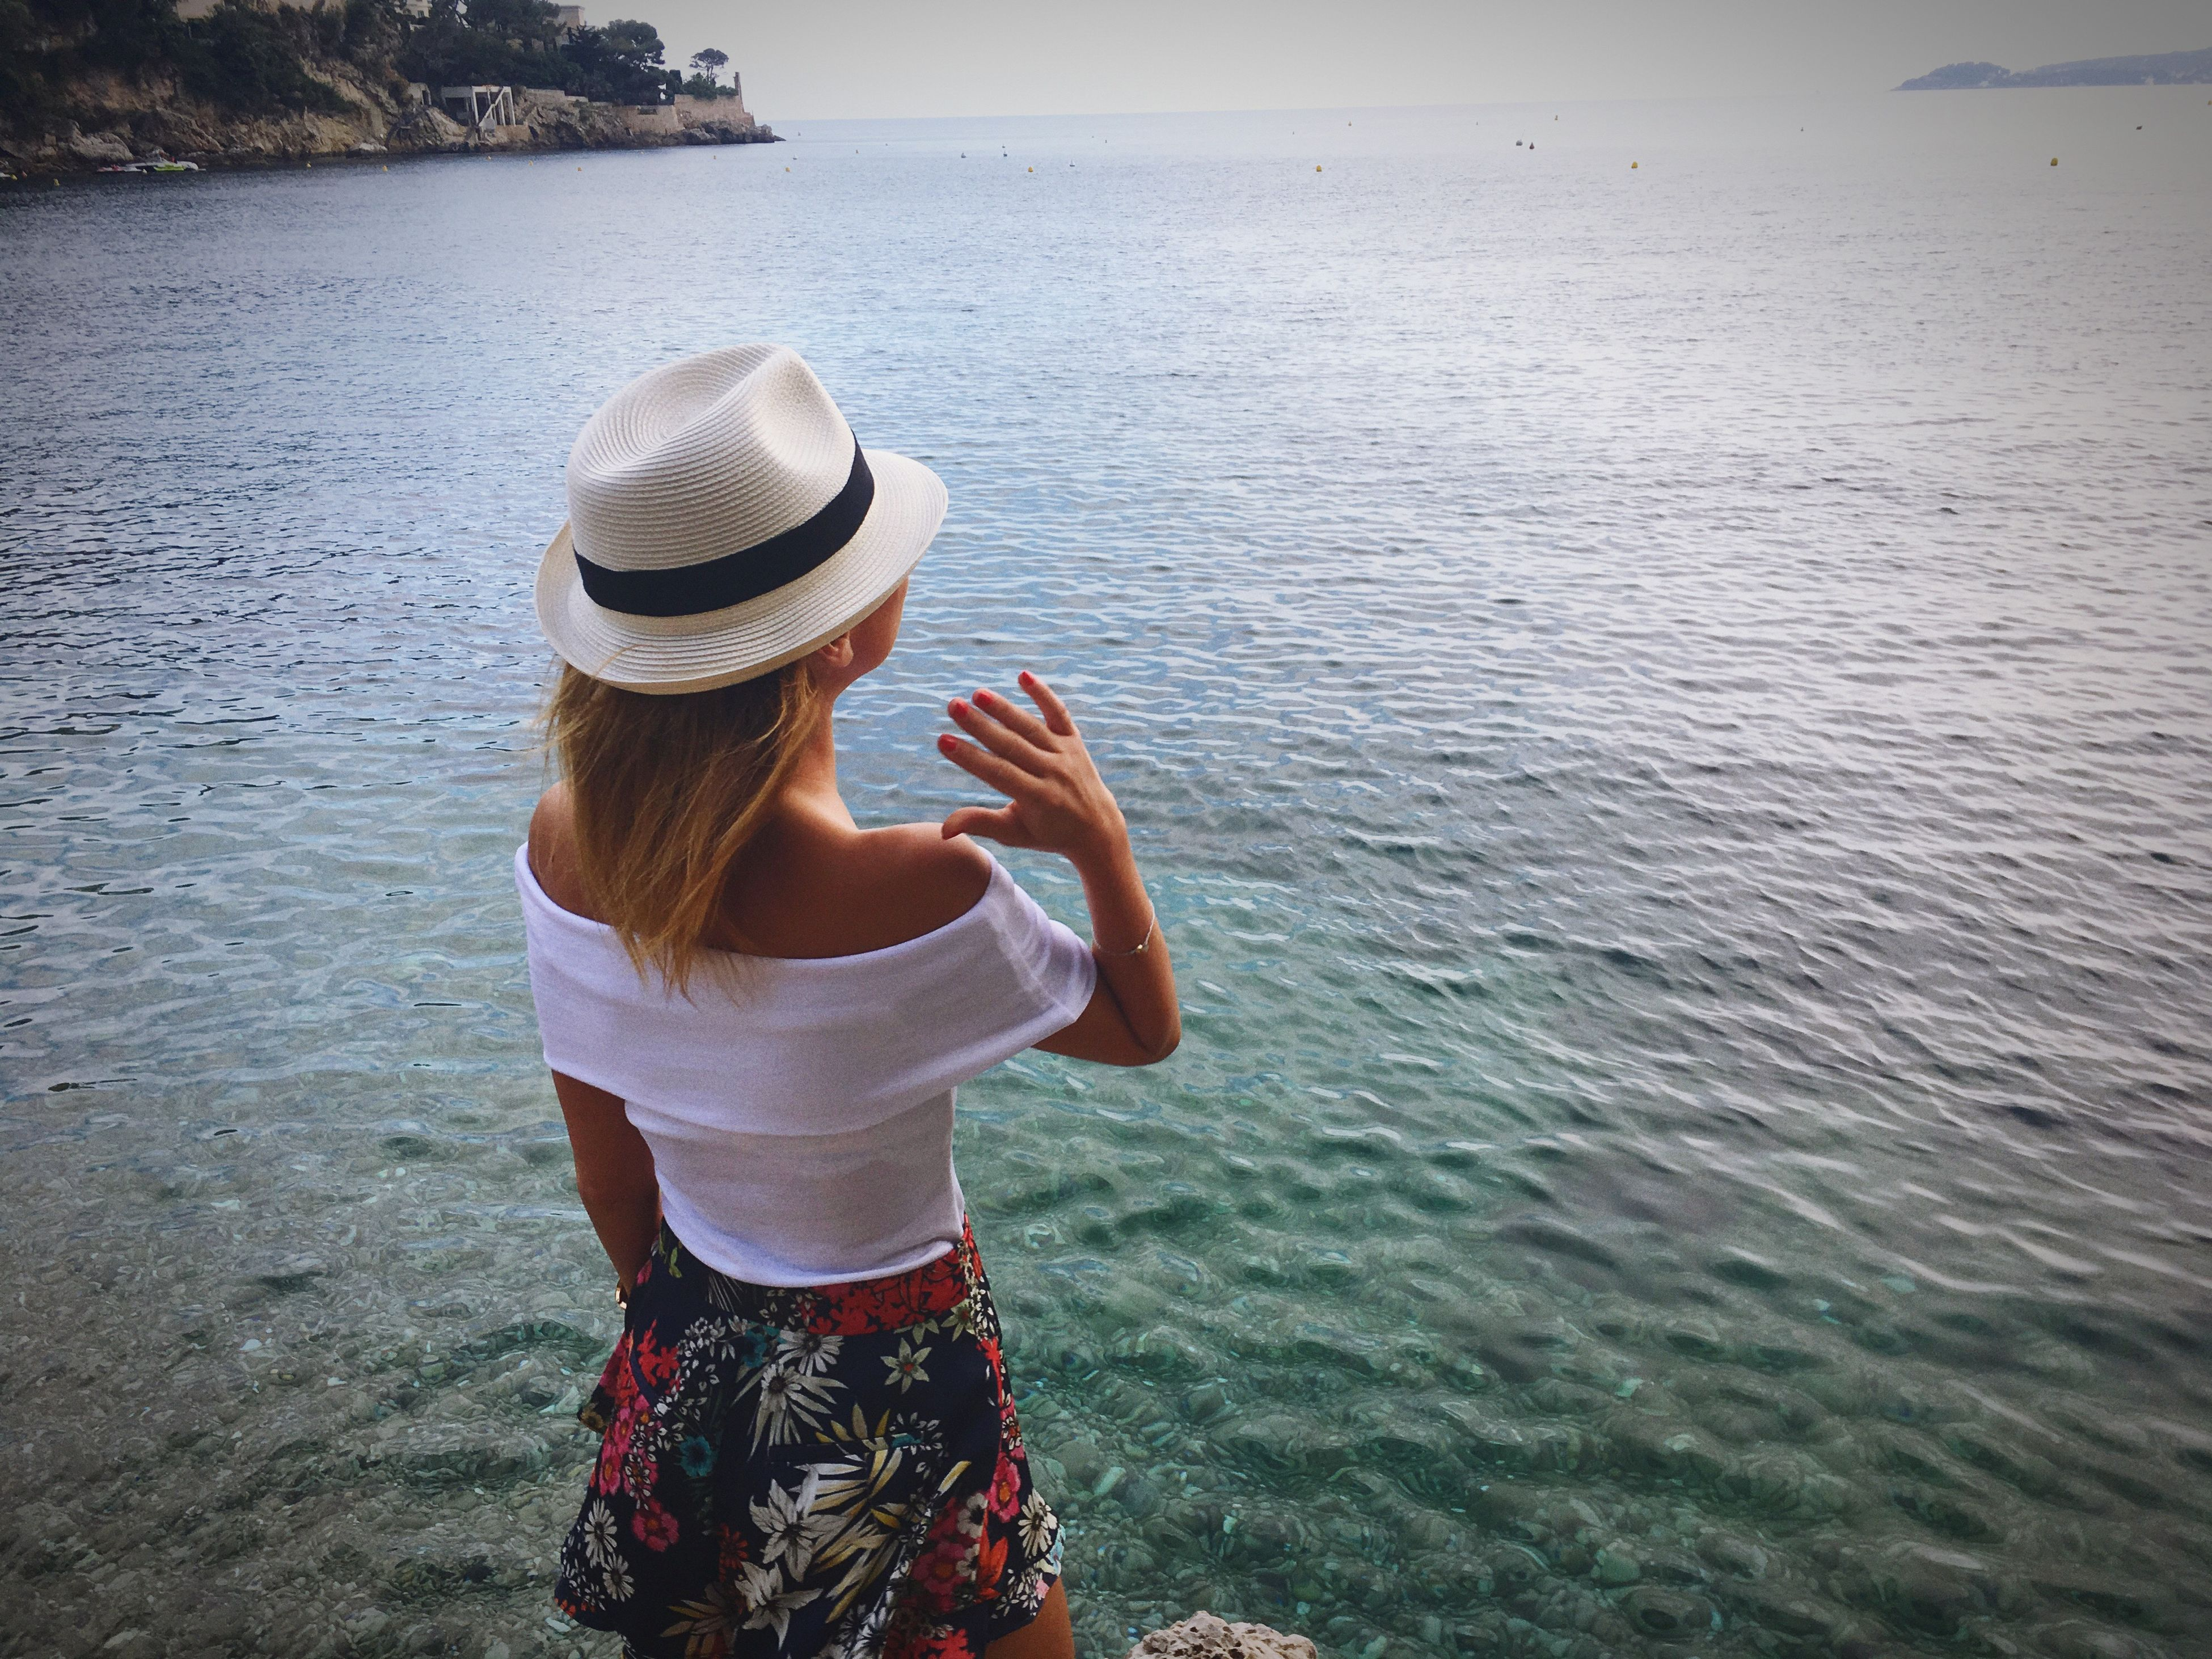 real people, leisure activity, water, one person, hat, lifestyles, three quarter length, rear view, casual clothing, sea, beauty in nature, standing, day, nature, outdoors, vacations, sun hat, women, scenics, young adult, young women